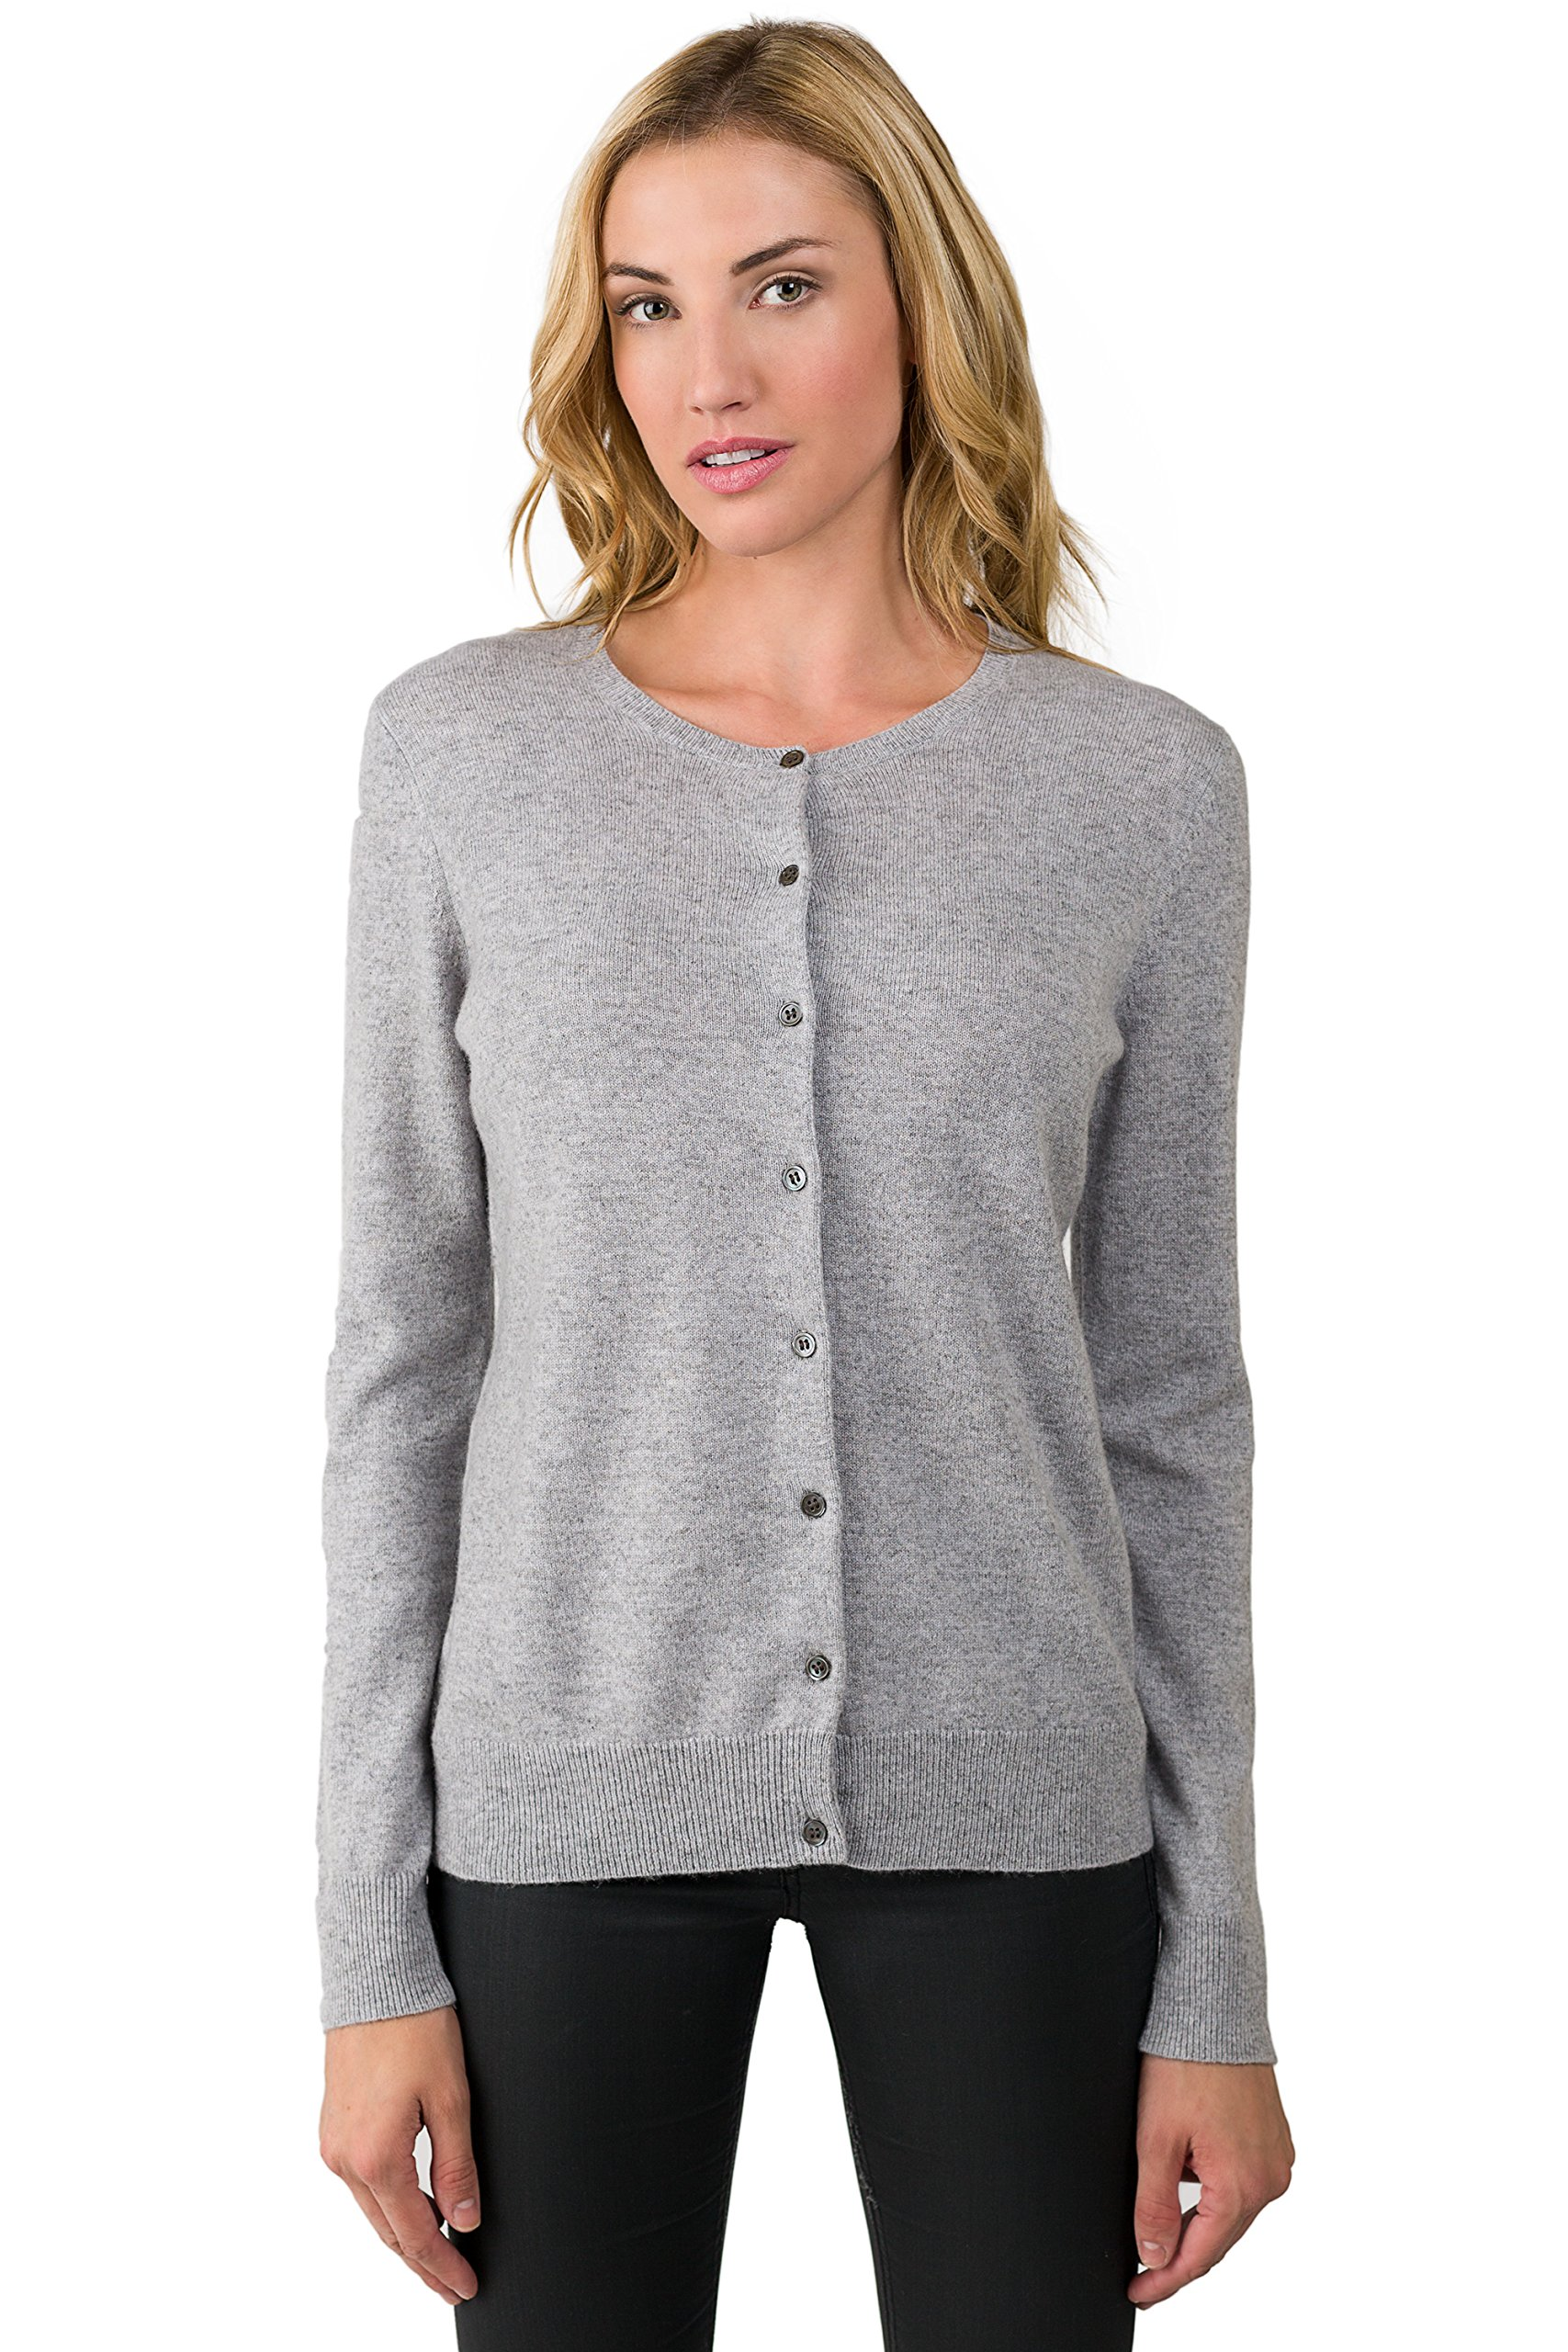 JENNIE LIU Women's 100% Cashmere Button Front Long Sleeve Crewneck Cardigan Sweater (L, GREY) by JENNIE LIU